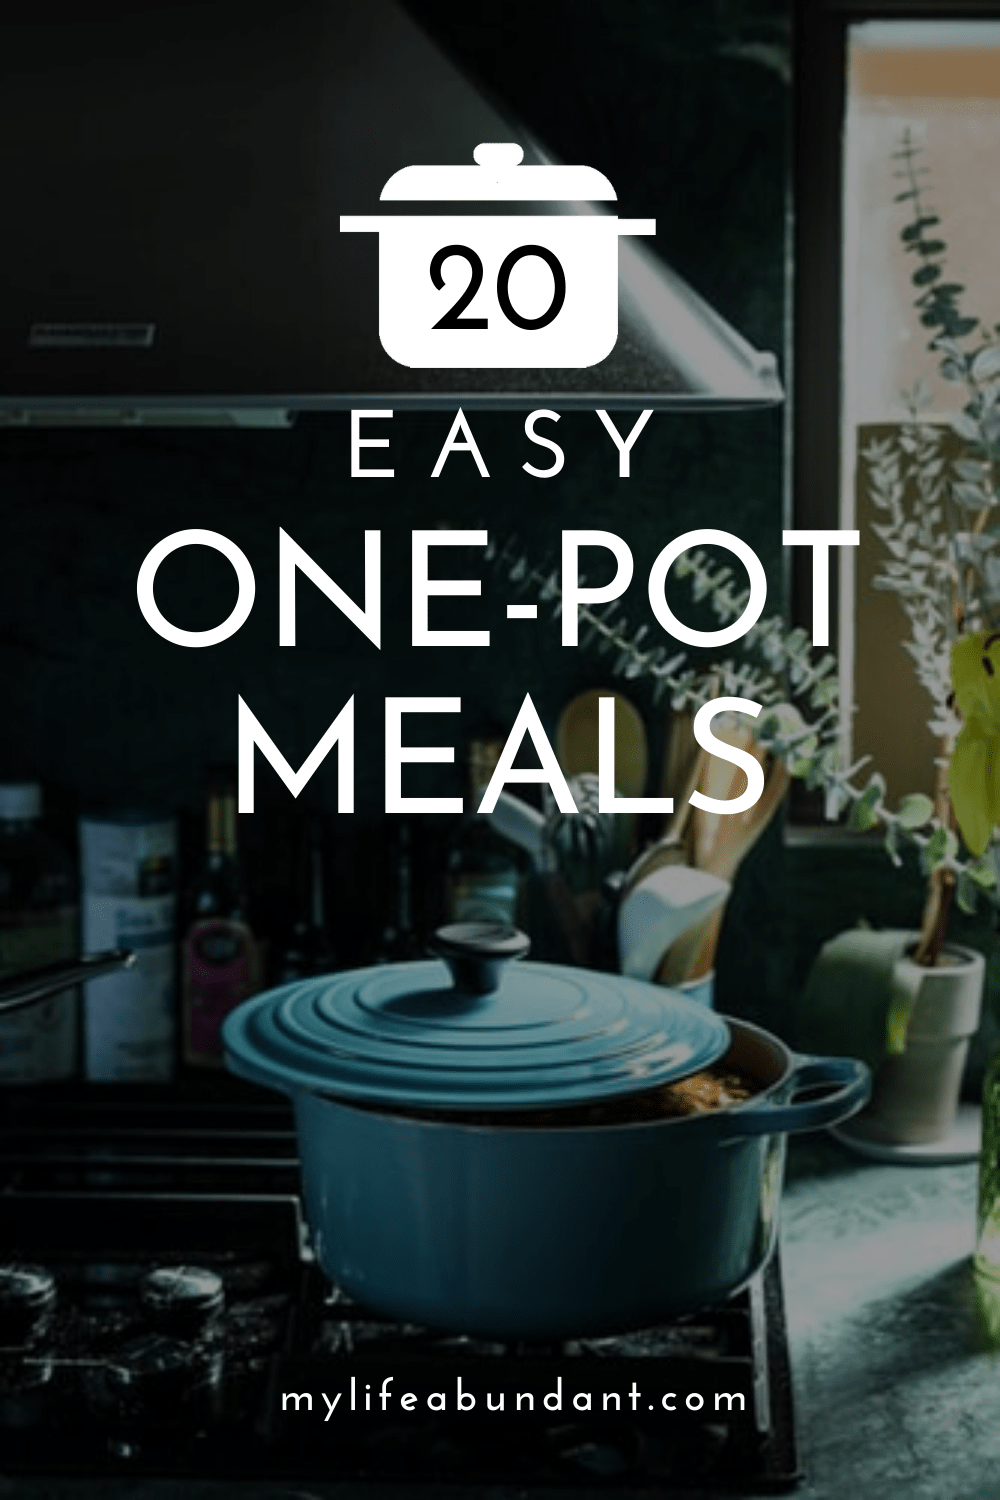 One-pot meals are made for those with a busy schedule with fast-cooking ingredients and tons of flavor the whole family will enjoy.